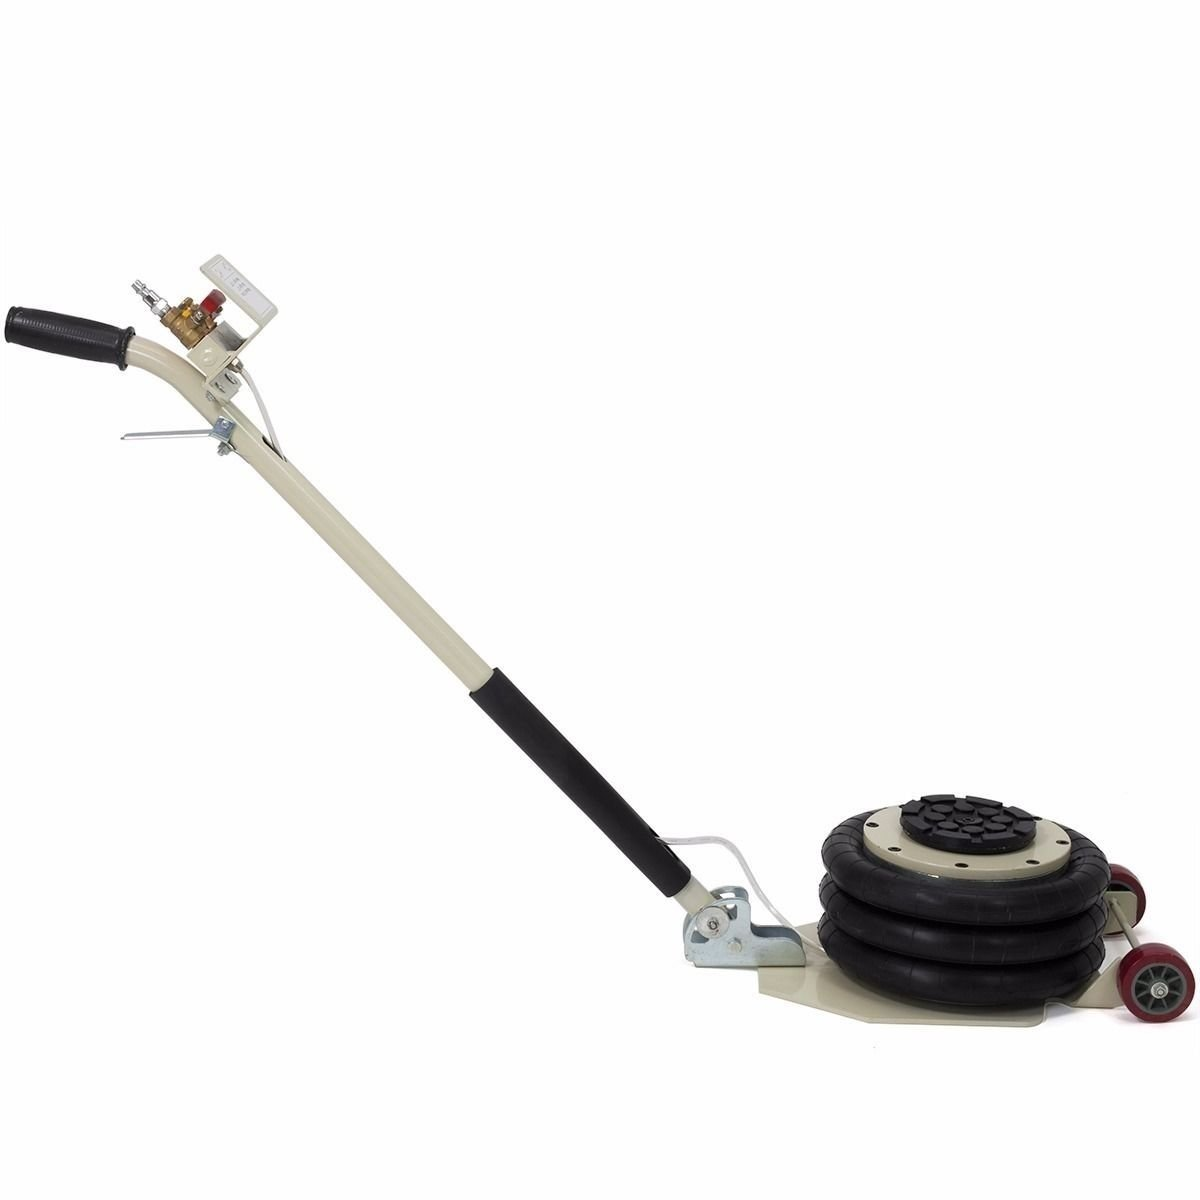 INTBUYING 6600lbs Triple Bag Air Jack Portable 3 TON Triple Bag AIR Jack Frame Alignment car Truck Shop by INTBUYING (Image #2)